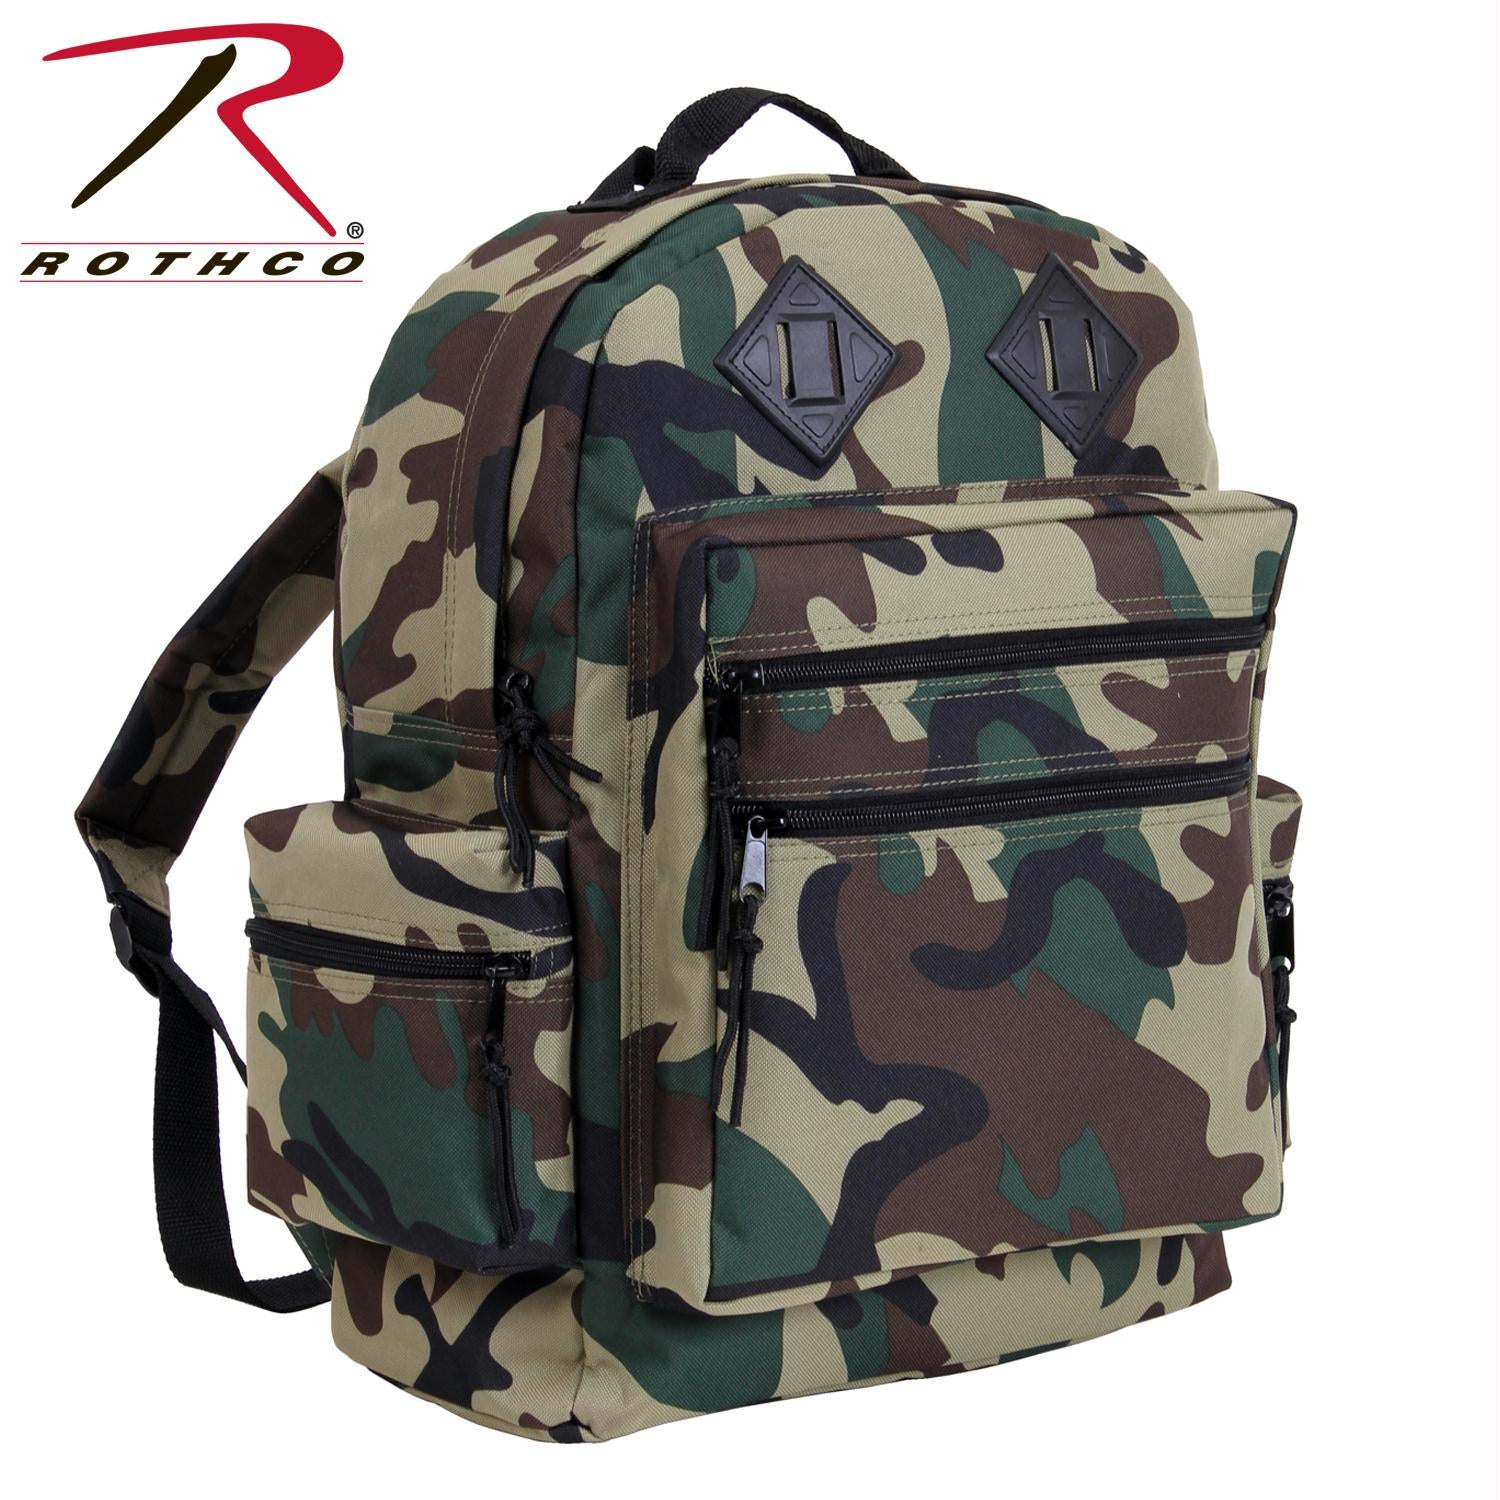 Rothco Deluxe Day Pack - Woodland Camo